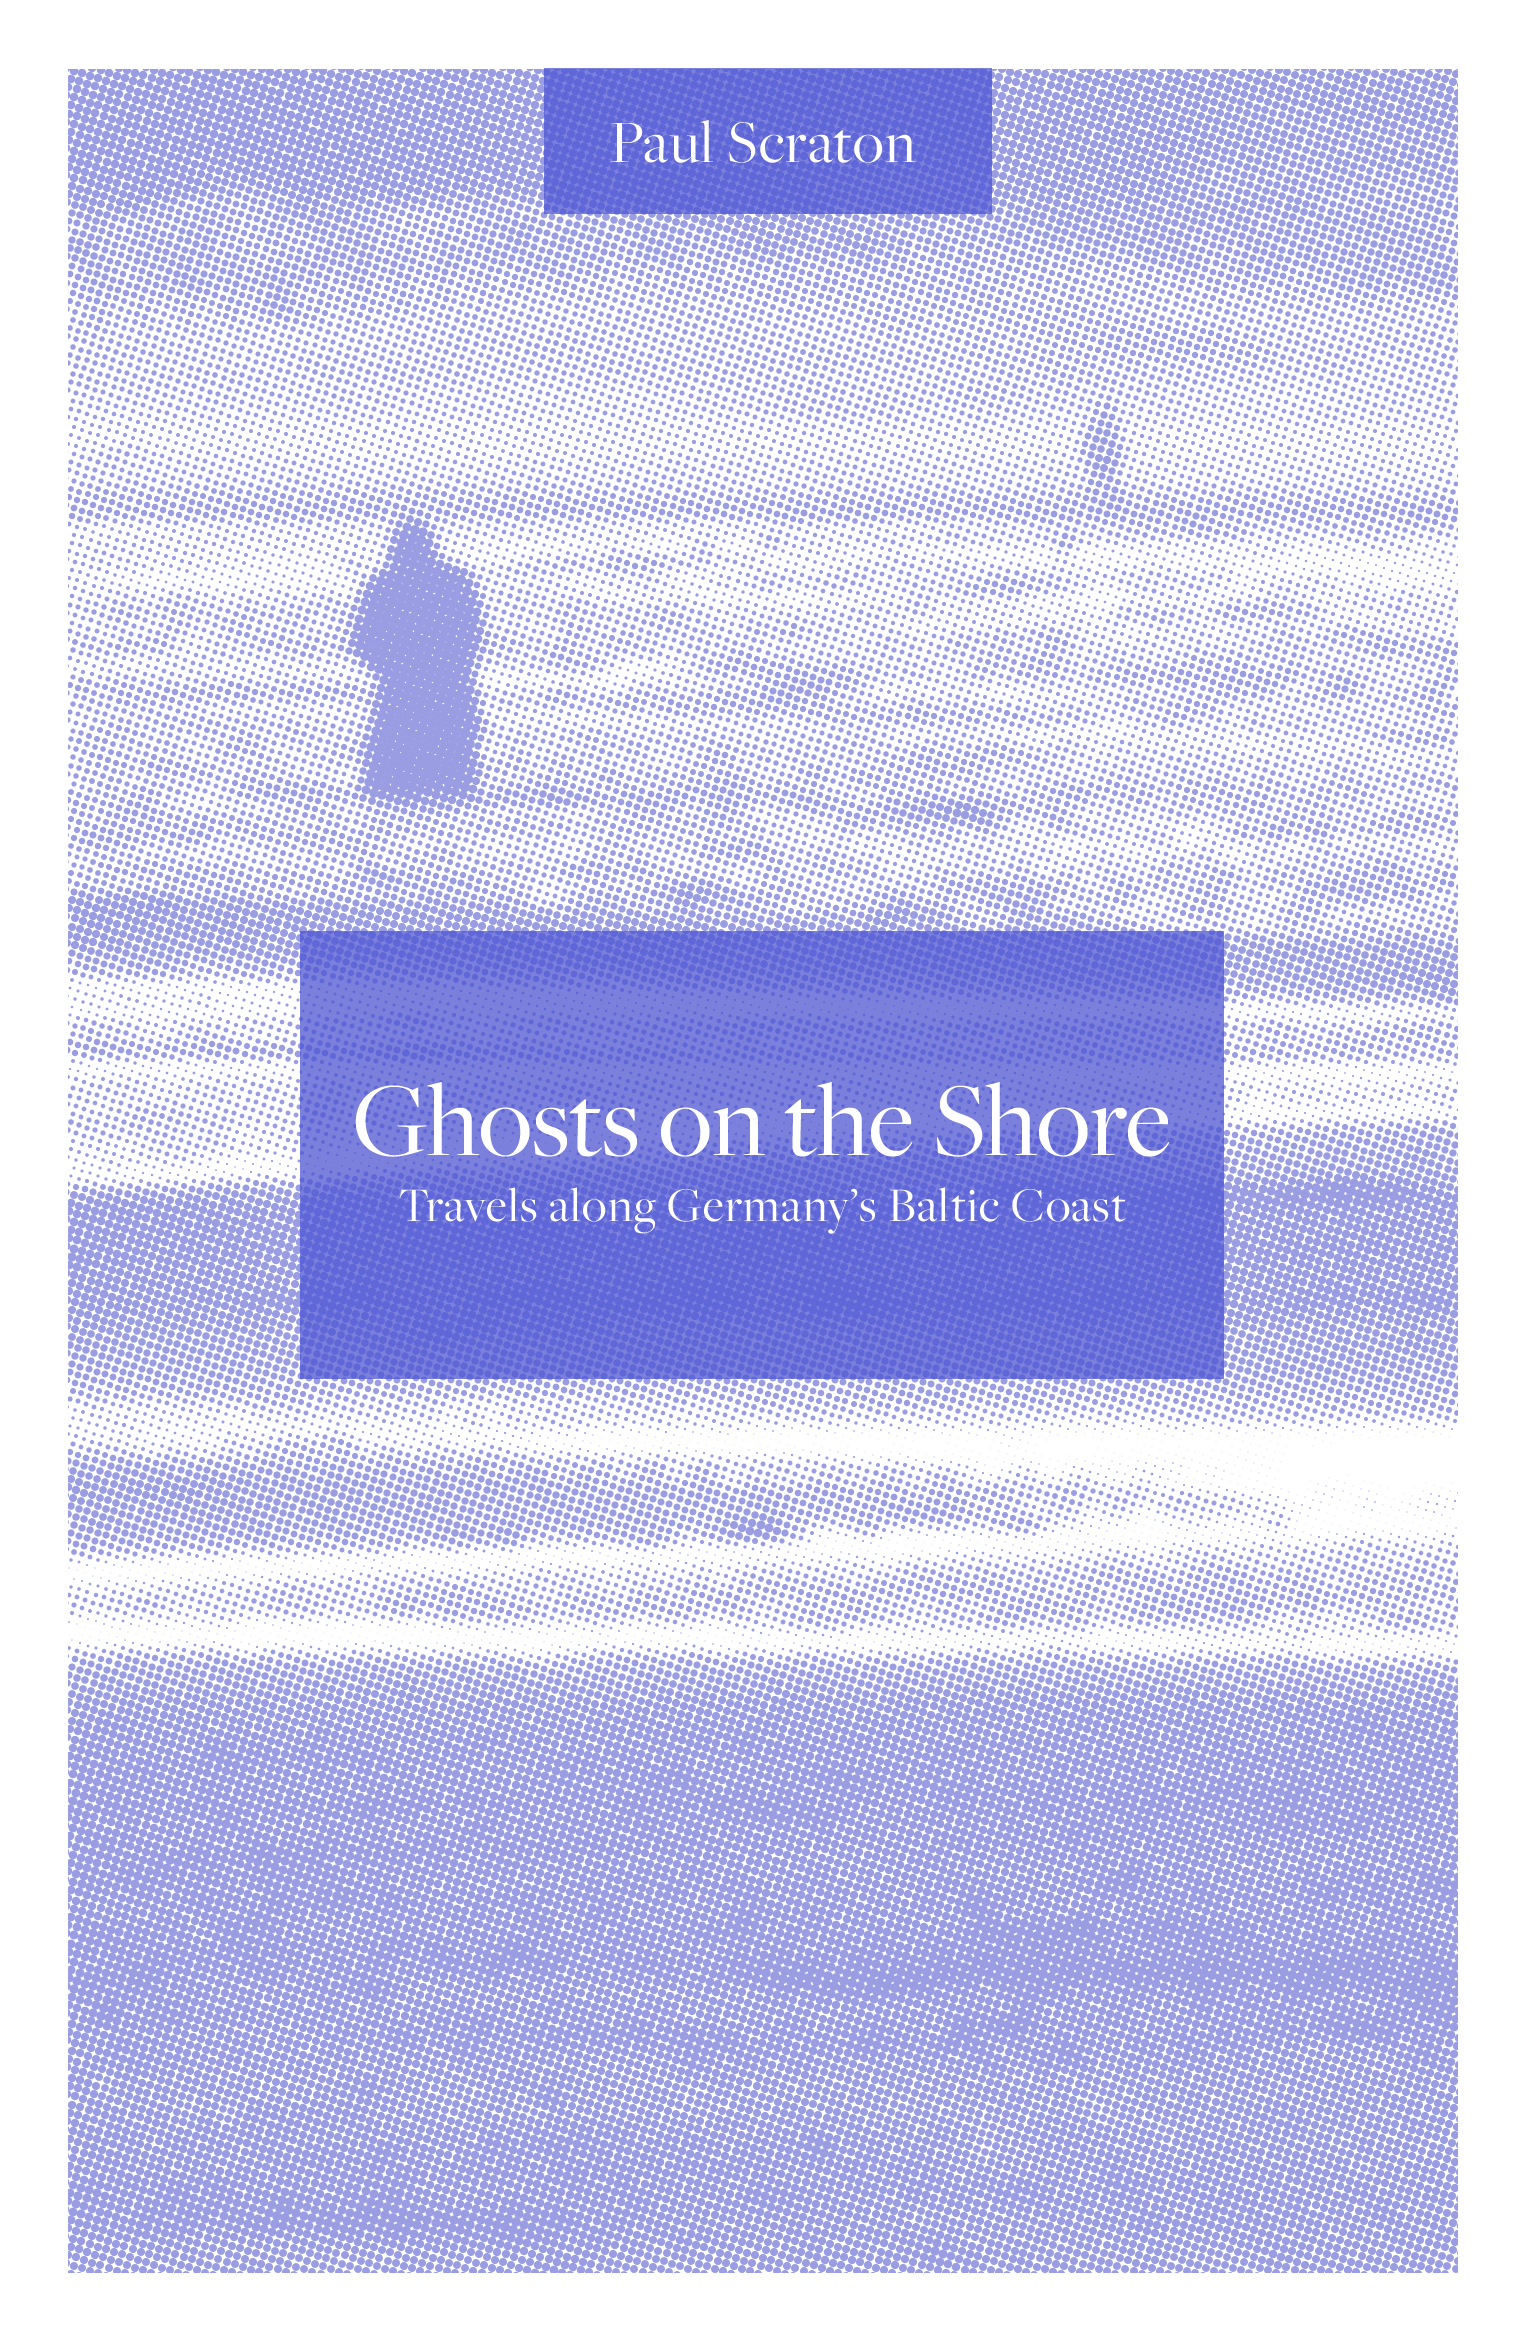 GhostsontheShore_Cover.jpg